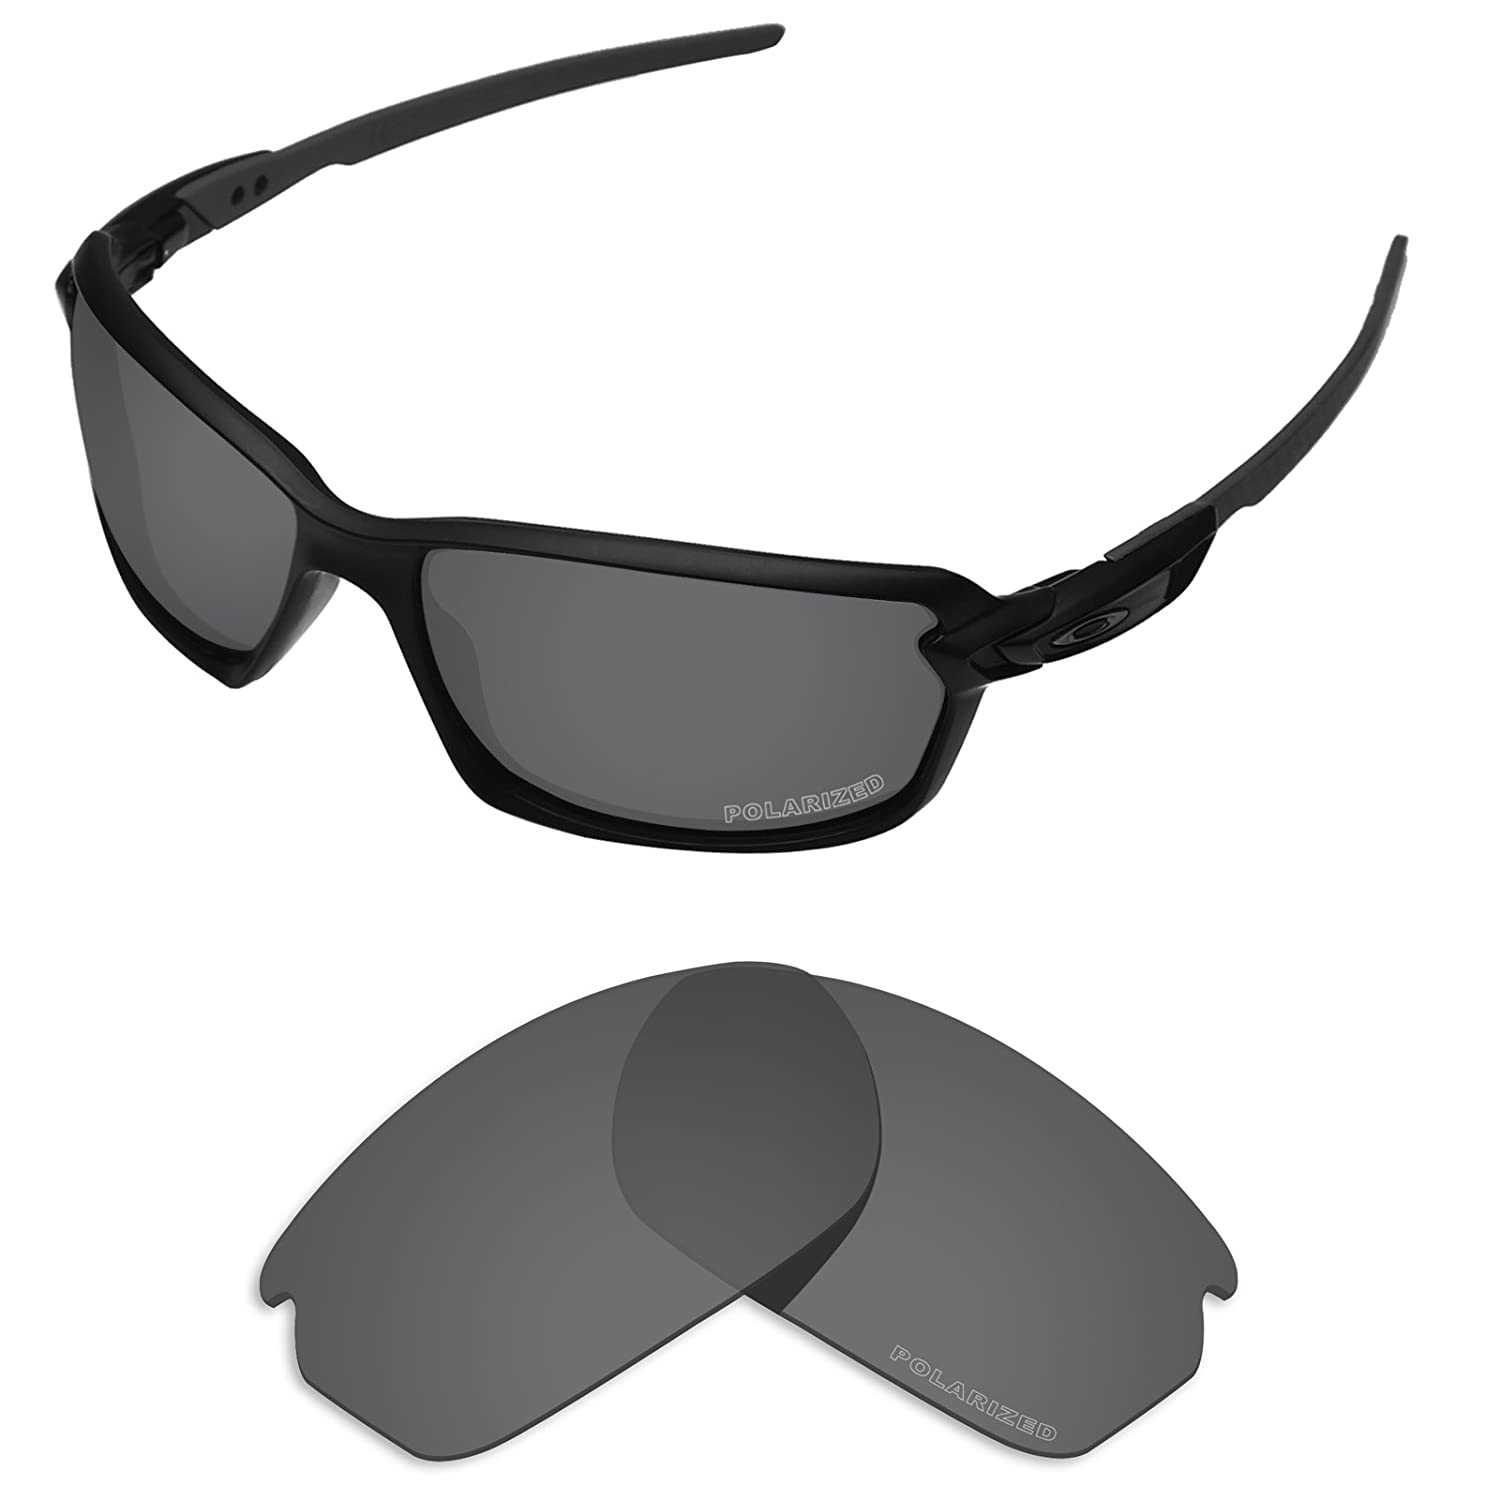 880334059faf3 Amazon.com  Tintart Performance Lenses Compatible with Oakley Carbon Shift  Polarized Etched-Carbon Black  Clothing